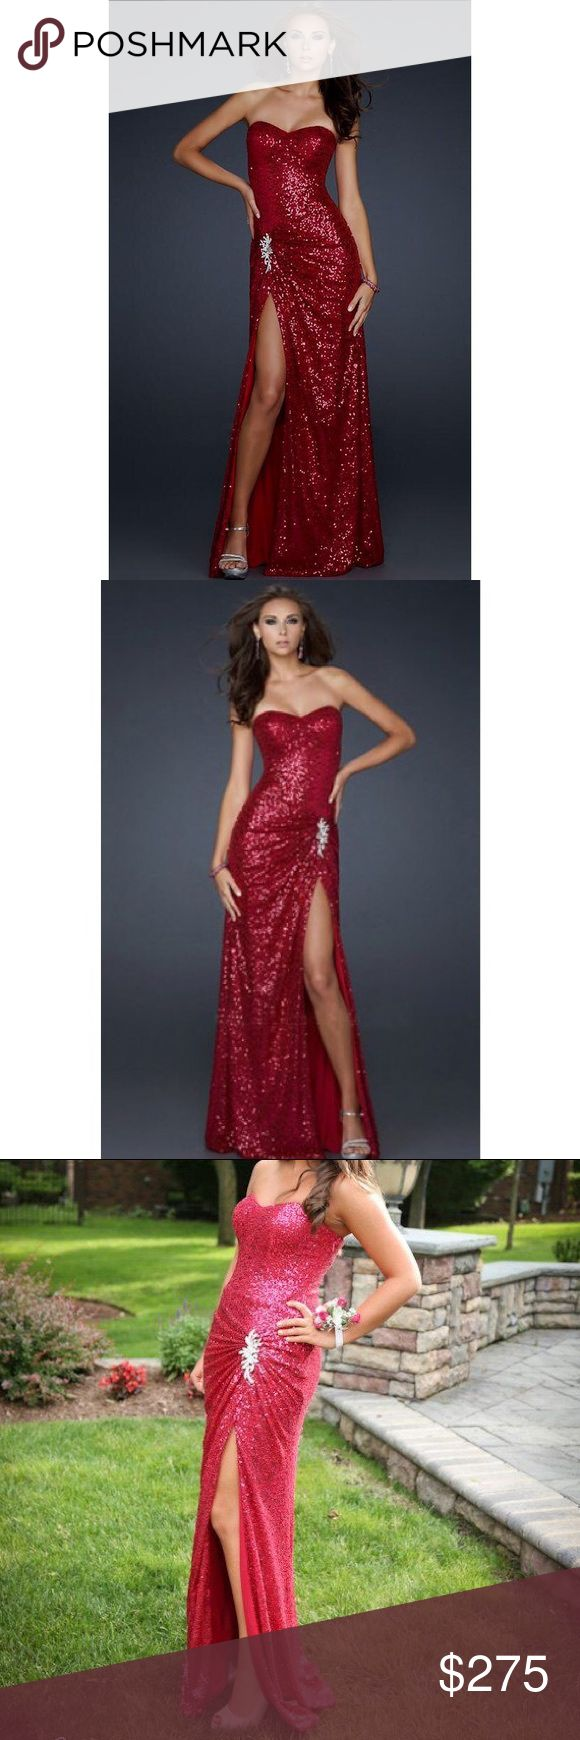 La Femme Sequin Prom Gown Gorgeous La Femme prom gown. I wore it once to my prom I was really in love with it. Hoping to sell it to someone that will enjoy it as much as I did. Color is red/raspberry all sequins.   Size 2. Dress retailed for over $500. I am 5'1 so I did get the dress hemmed to ft my height.  Really a gorgeous gown. Make me an offer :) La Femme Dresses Prom #AllThatIsRed